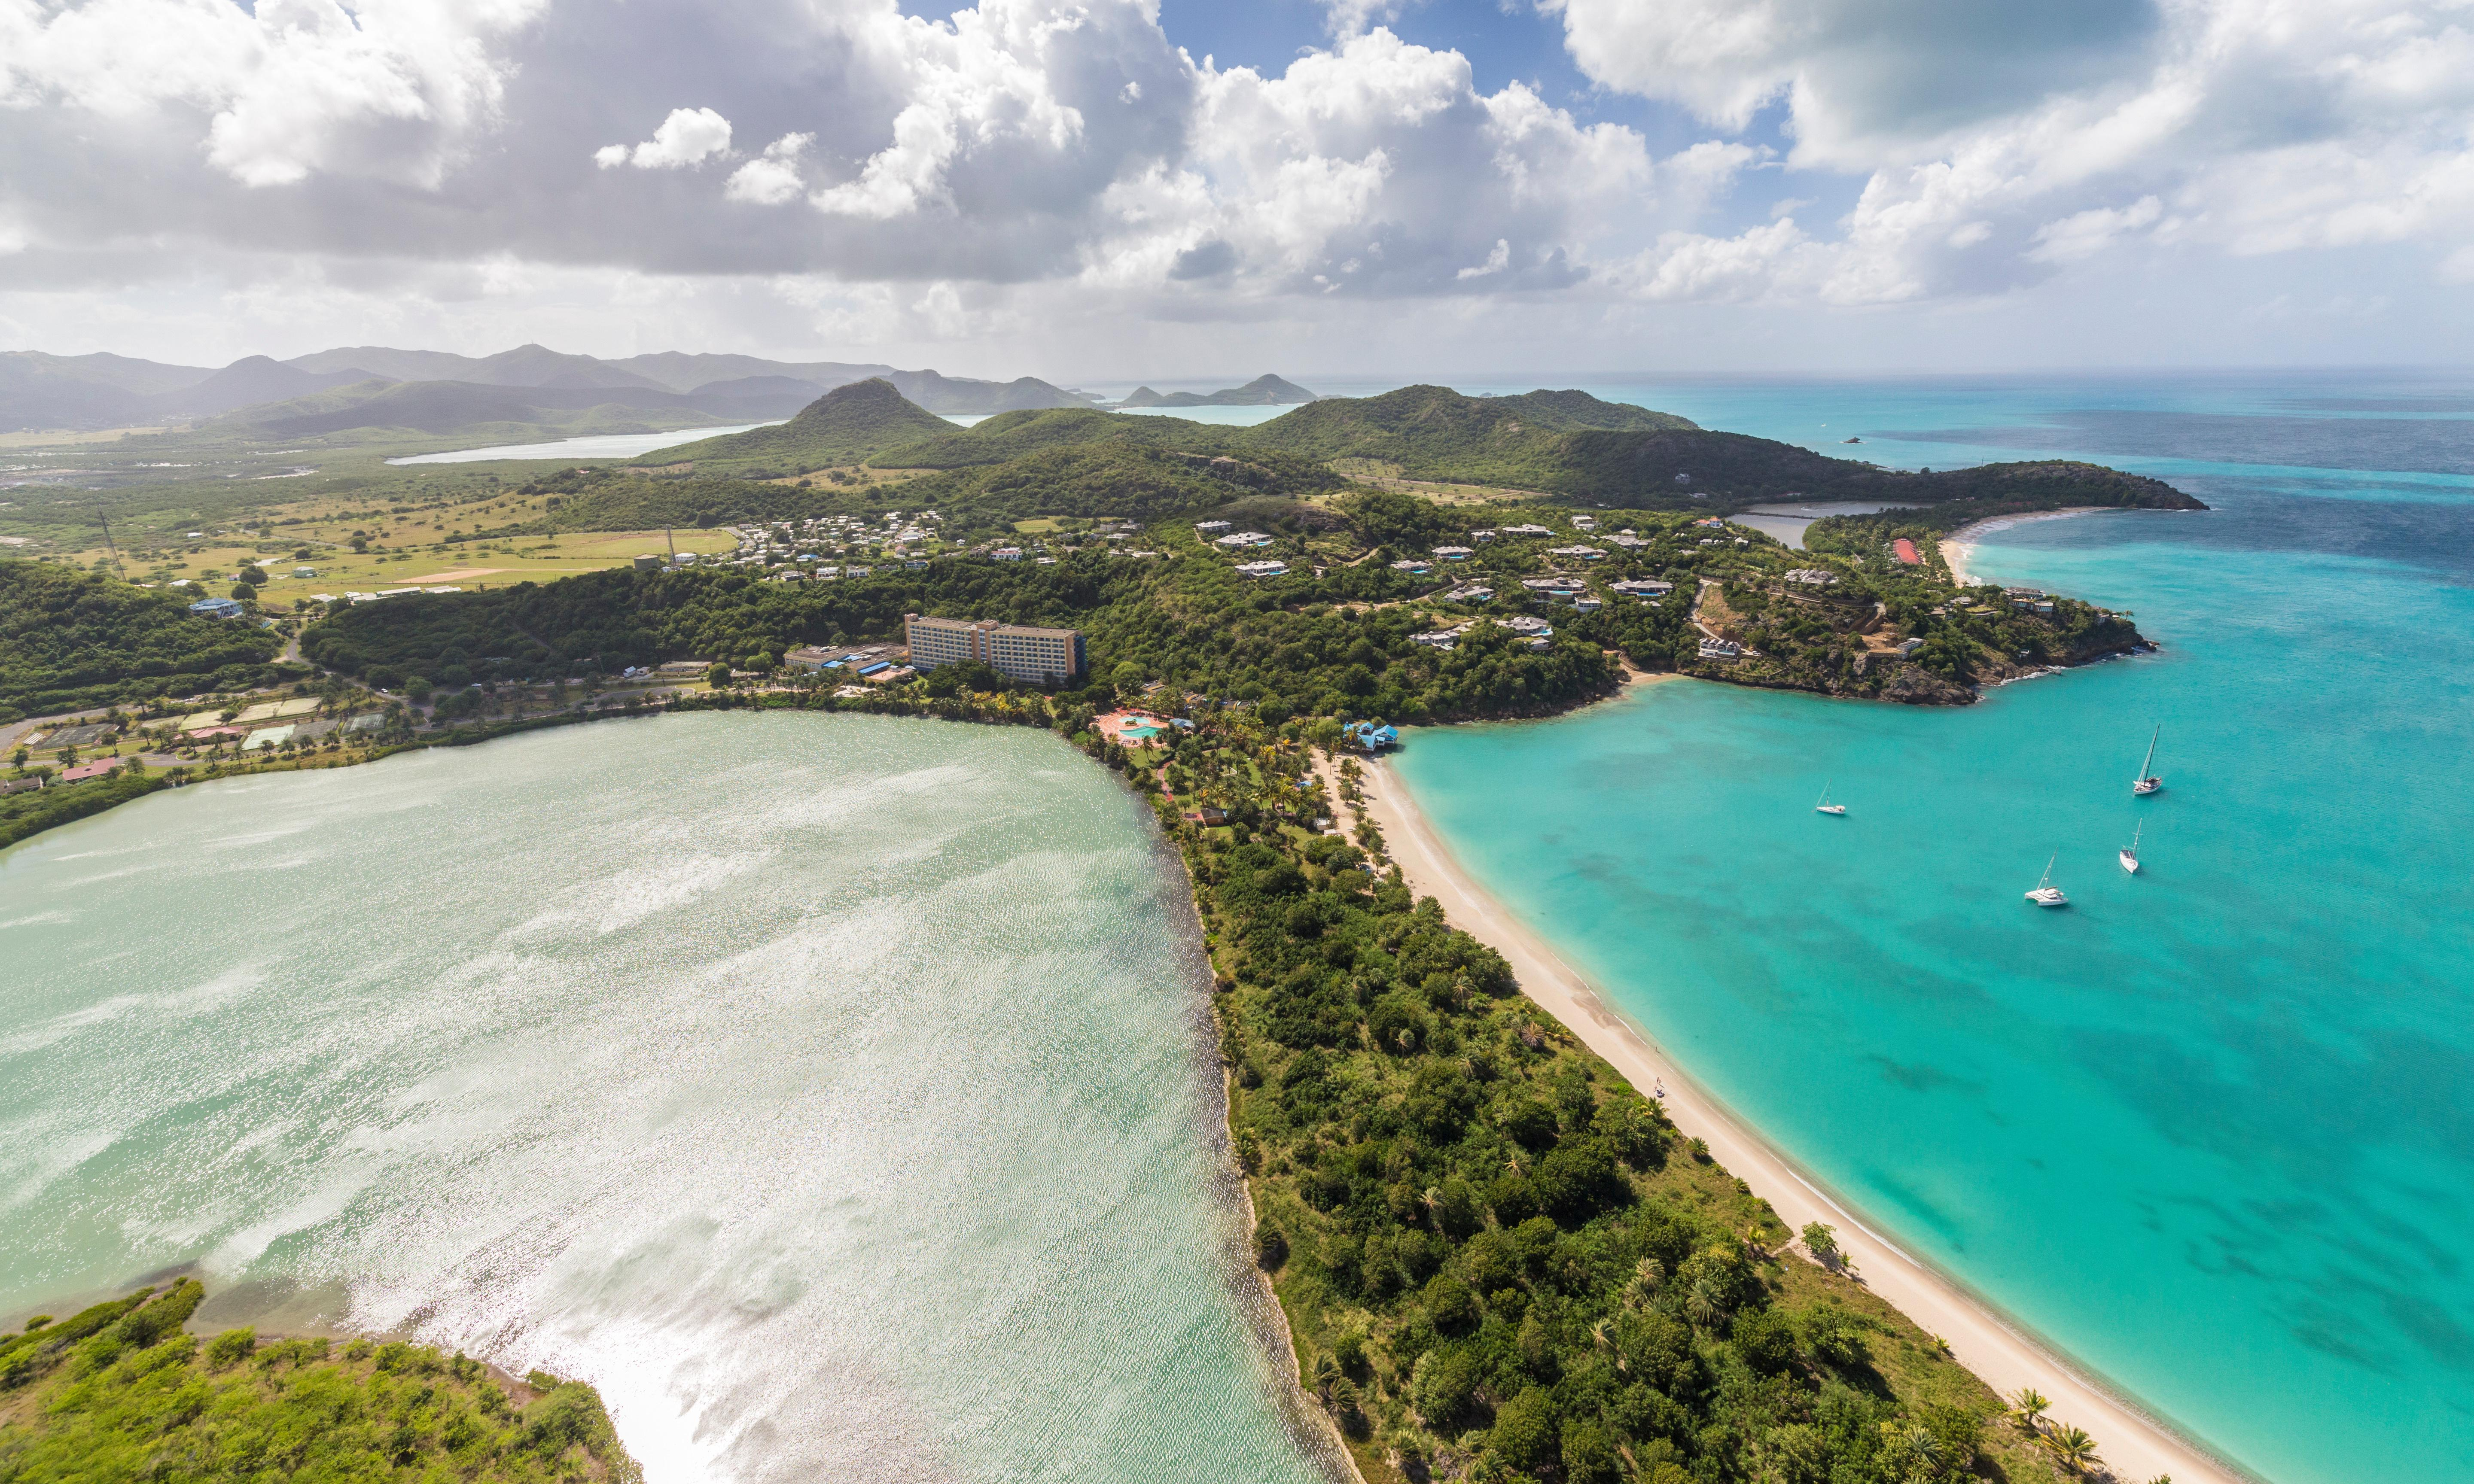 Antigua: sprawling 'Chinese colony' plan across marine reserve ignites opposition